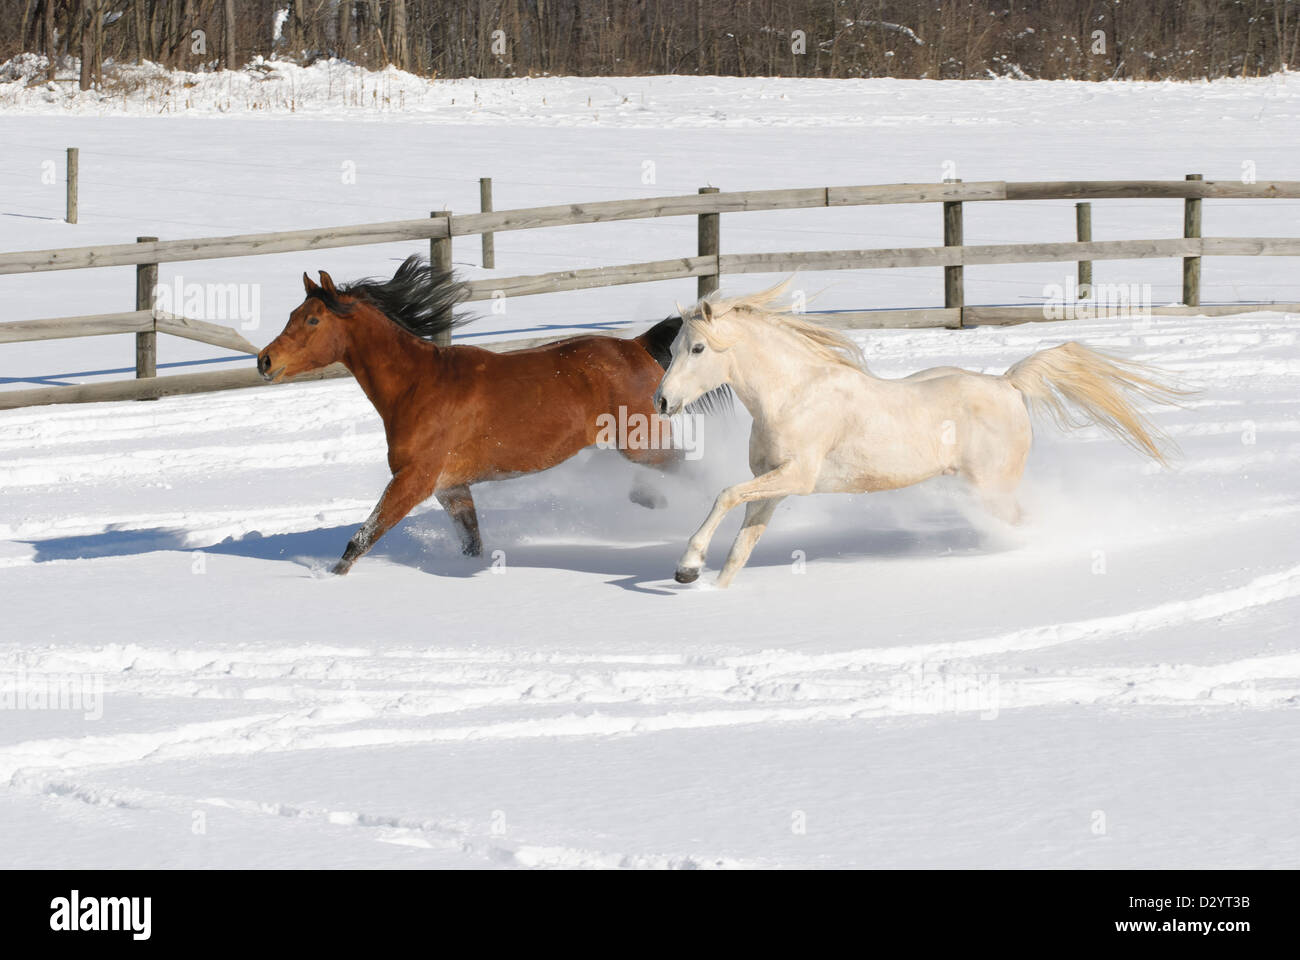 Horses running through new snow in sunny farm field, a mare and stallion Arabian purebreds. - Stock Image